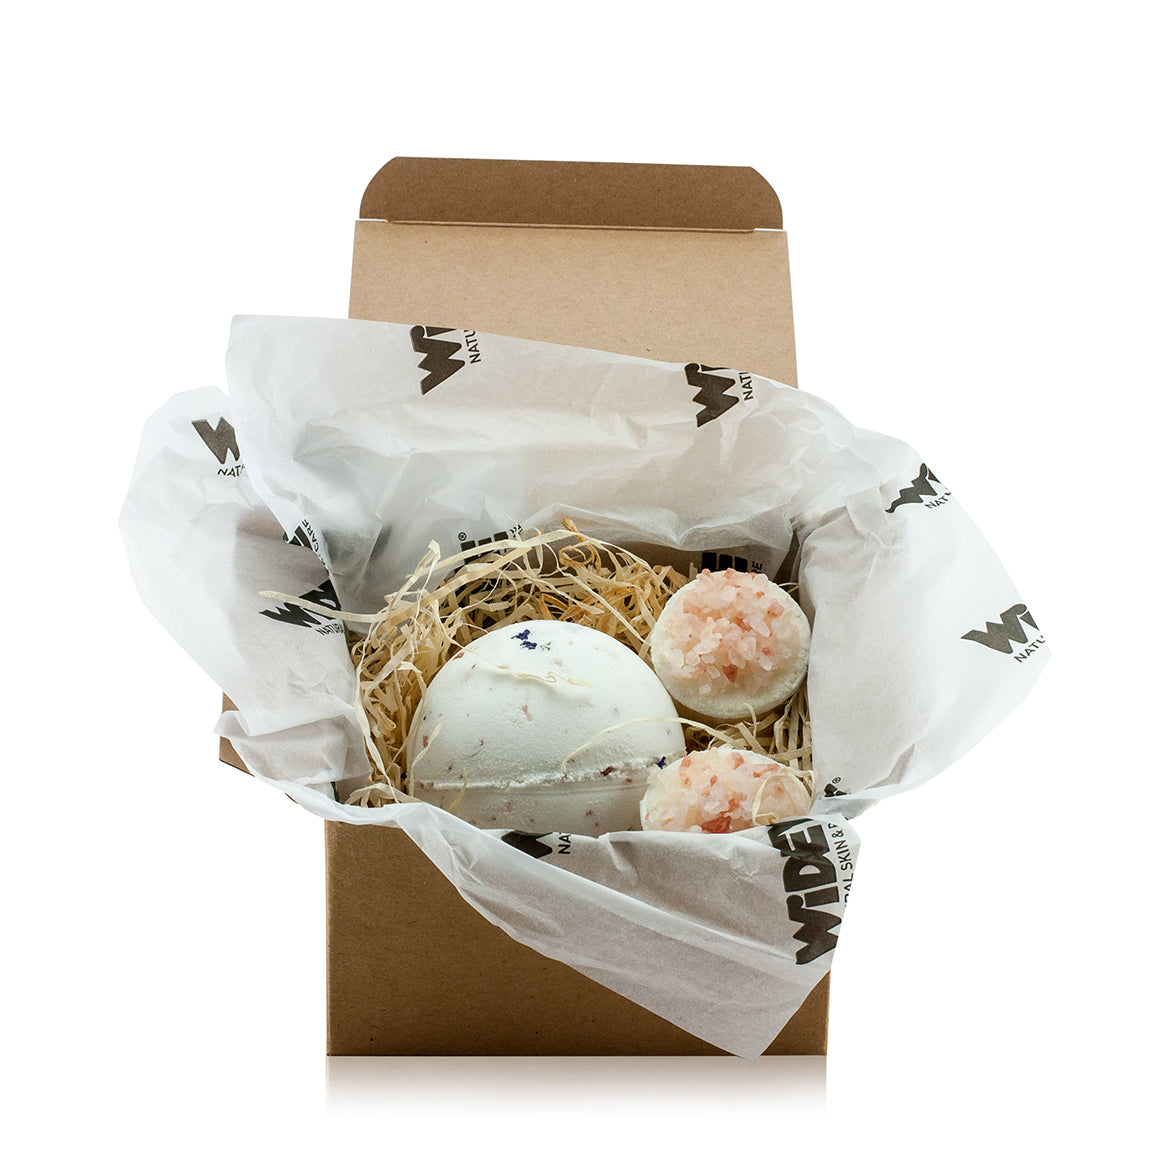 Natural vegan skincare Mini 'Aqua Karma' gift box with a bath bomb and butter cups, handmade by WiDEYE in Rye.